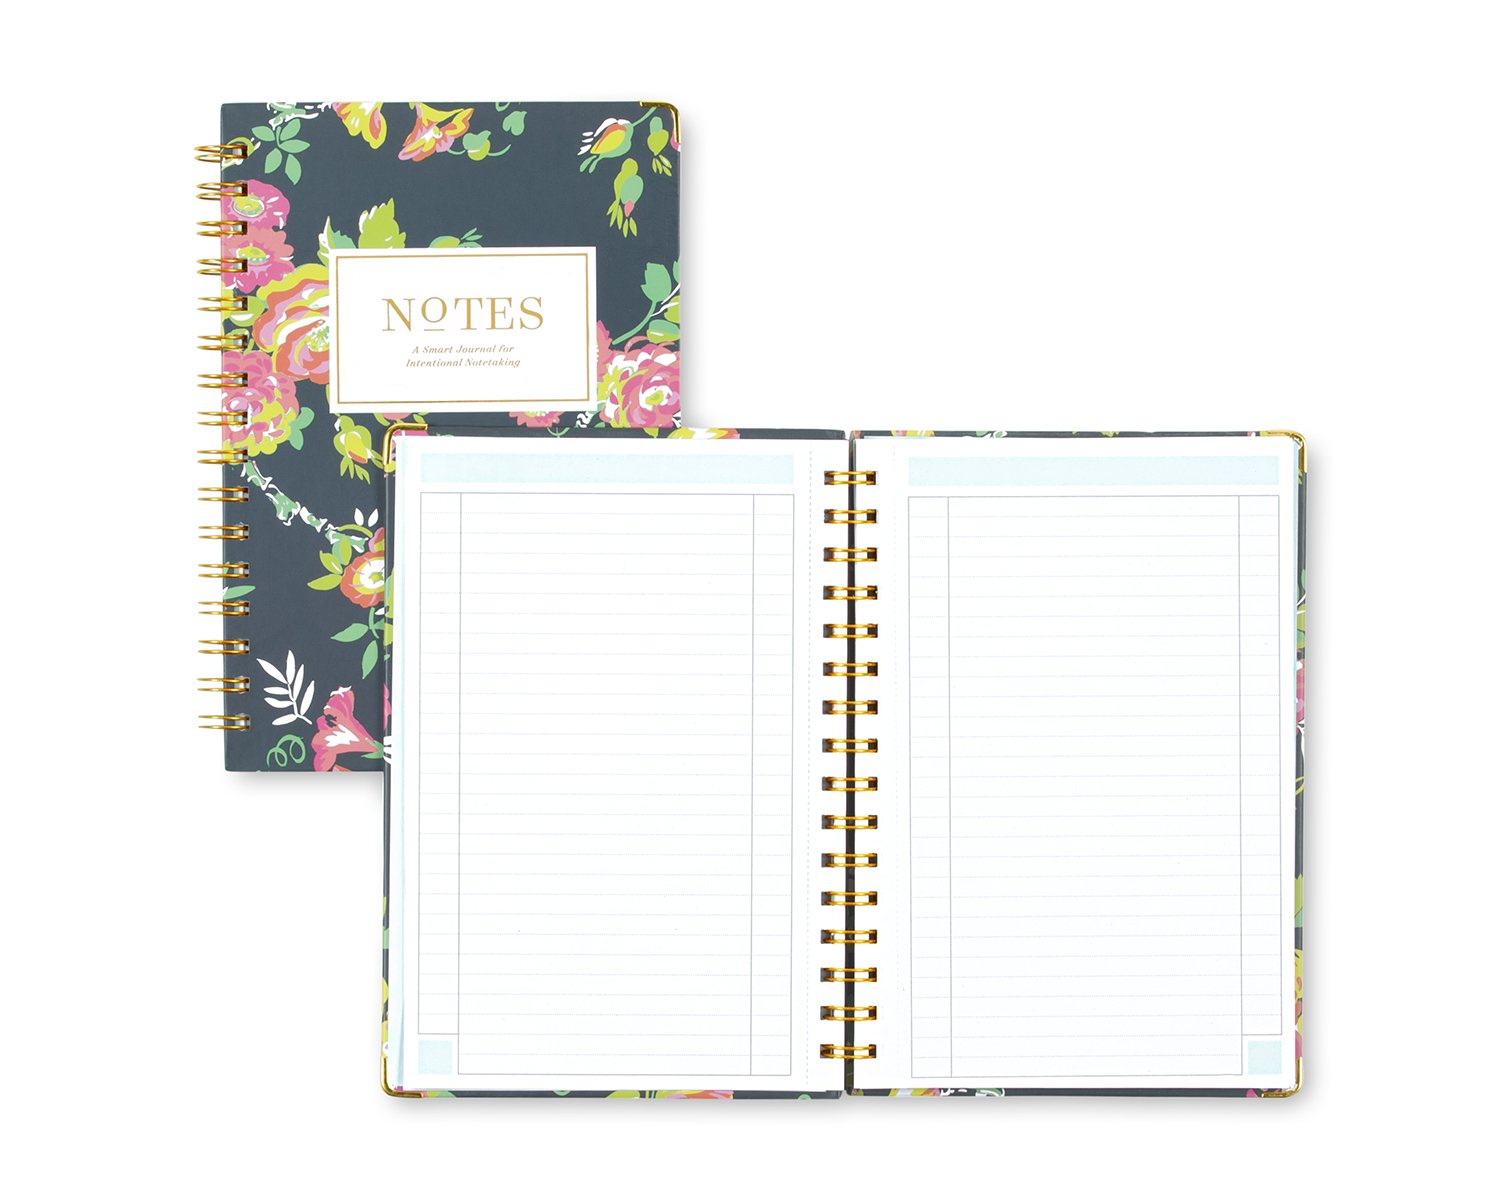 Day Designer for Blue Sky Notebook Journal, 160 Ruled Pages, Hardcover, Twin-Wire Binding, 5.75'' x 8.5'', Peyton Navy by Blue Sky (Image #3)